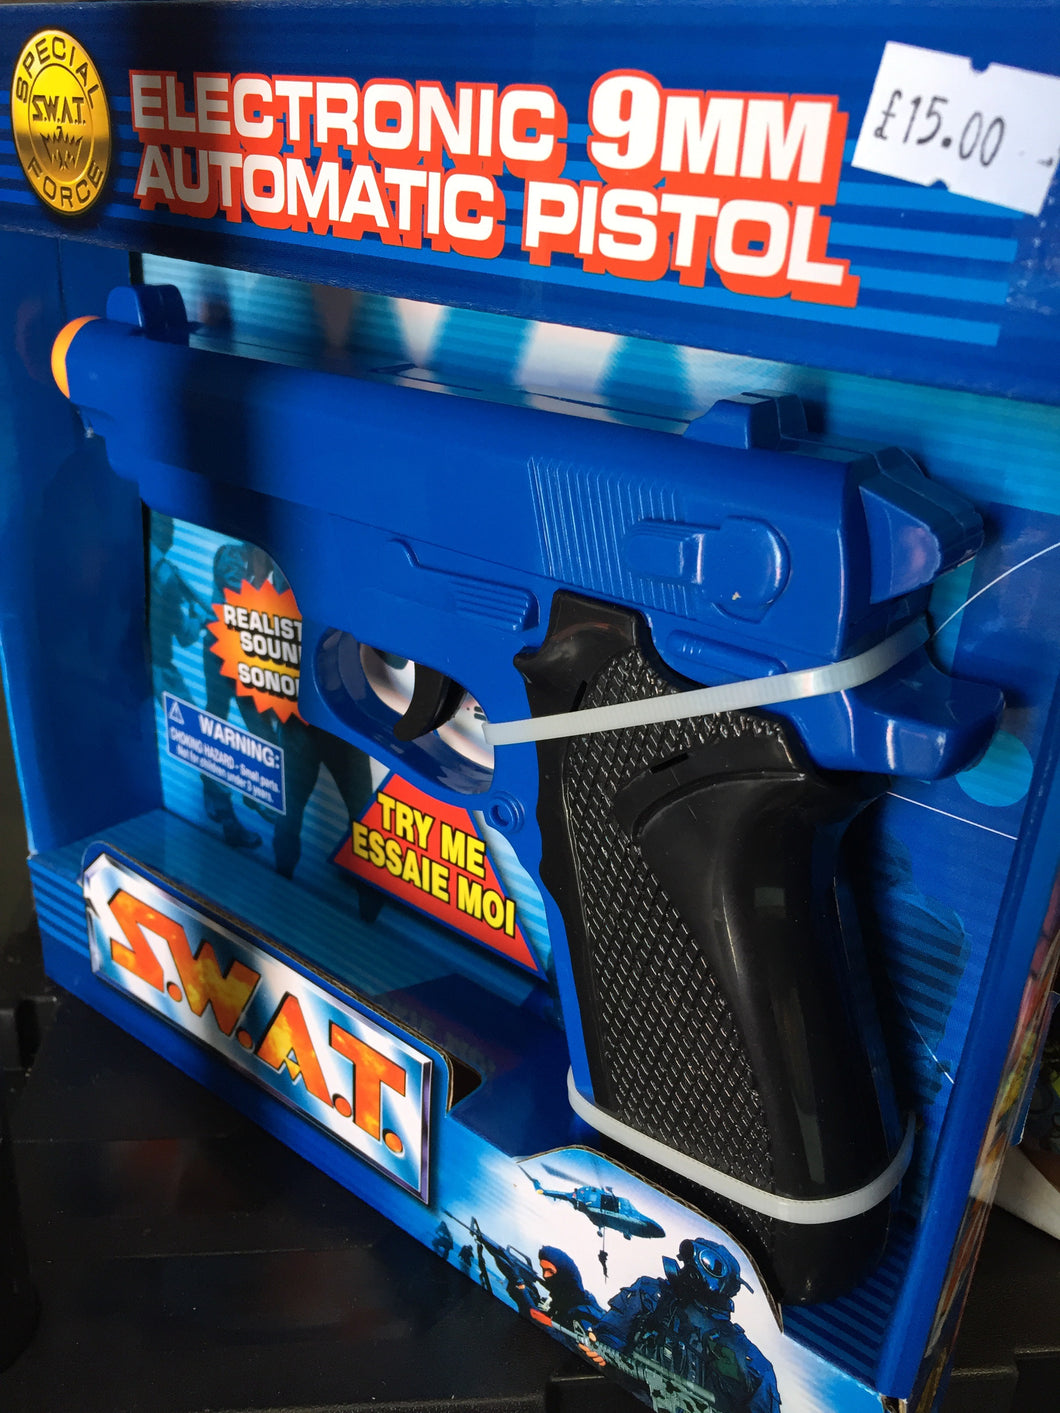 Electronic Pistol - First Class Learning Bradford